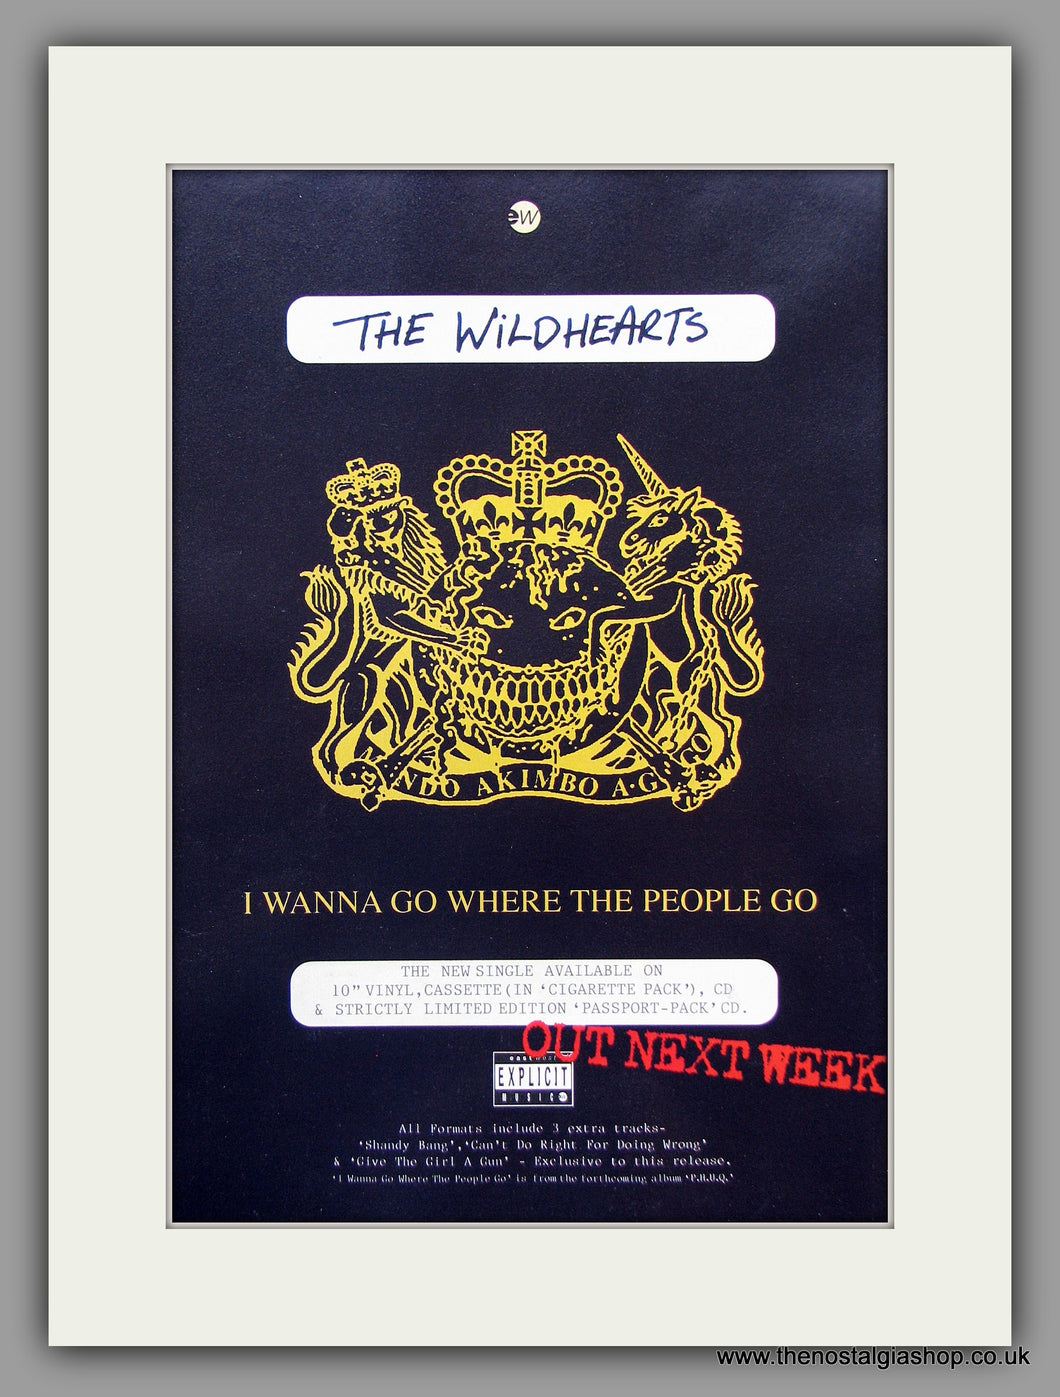 Wildhearts (The) I Wanna Go Where The People Go. 1995 Original Advert (ref AD7947)